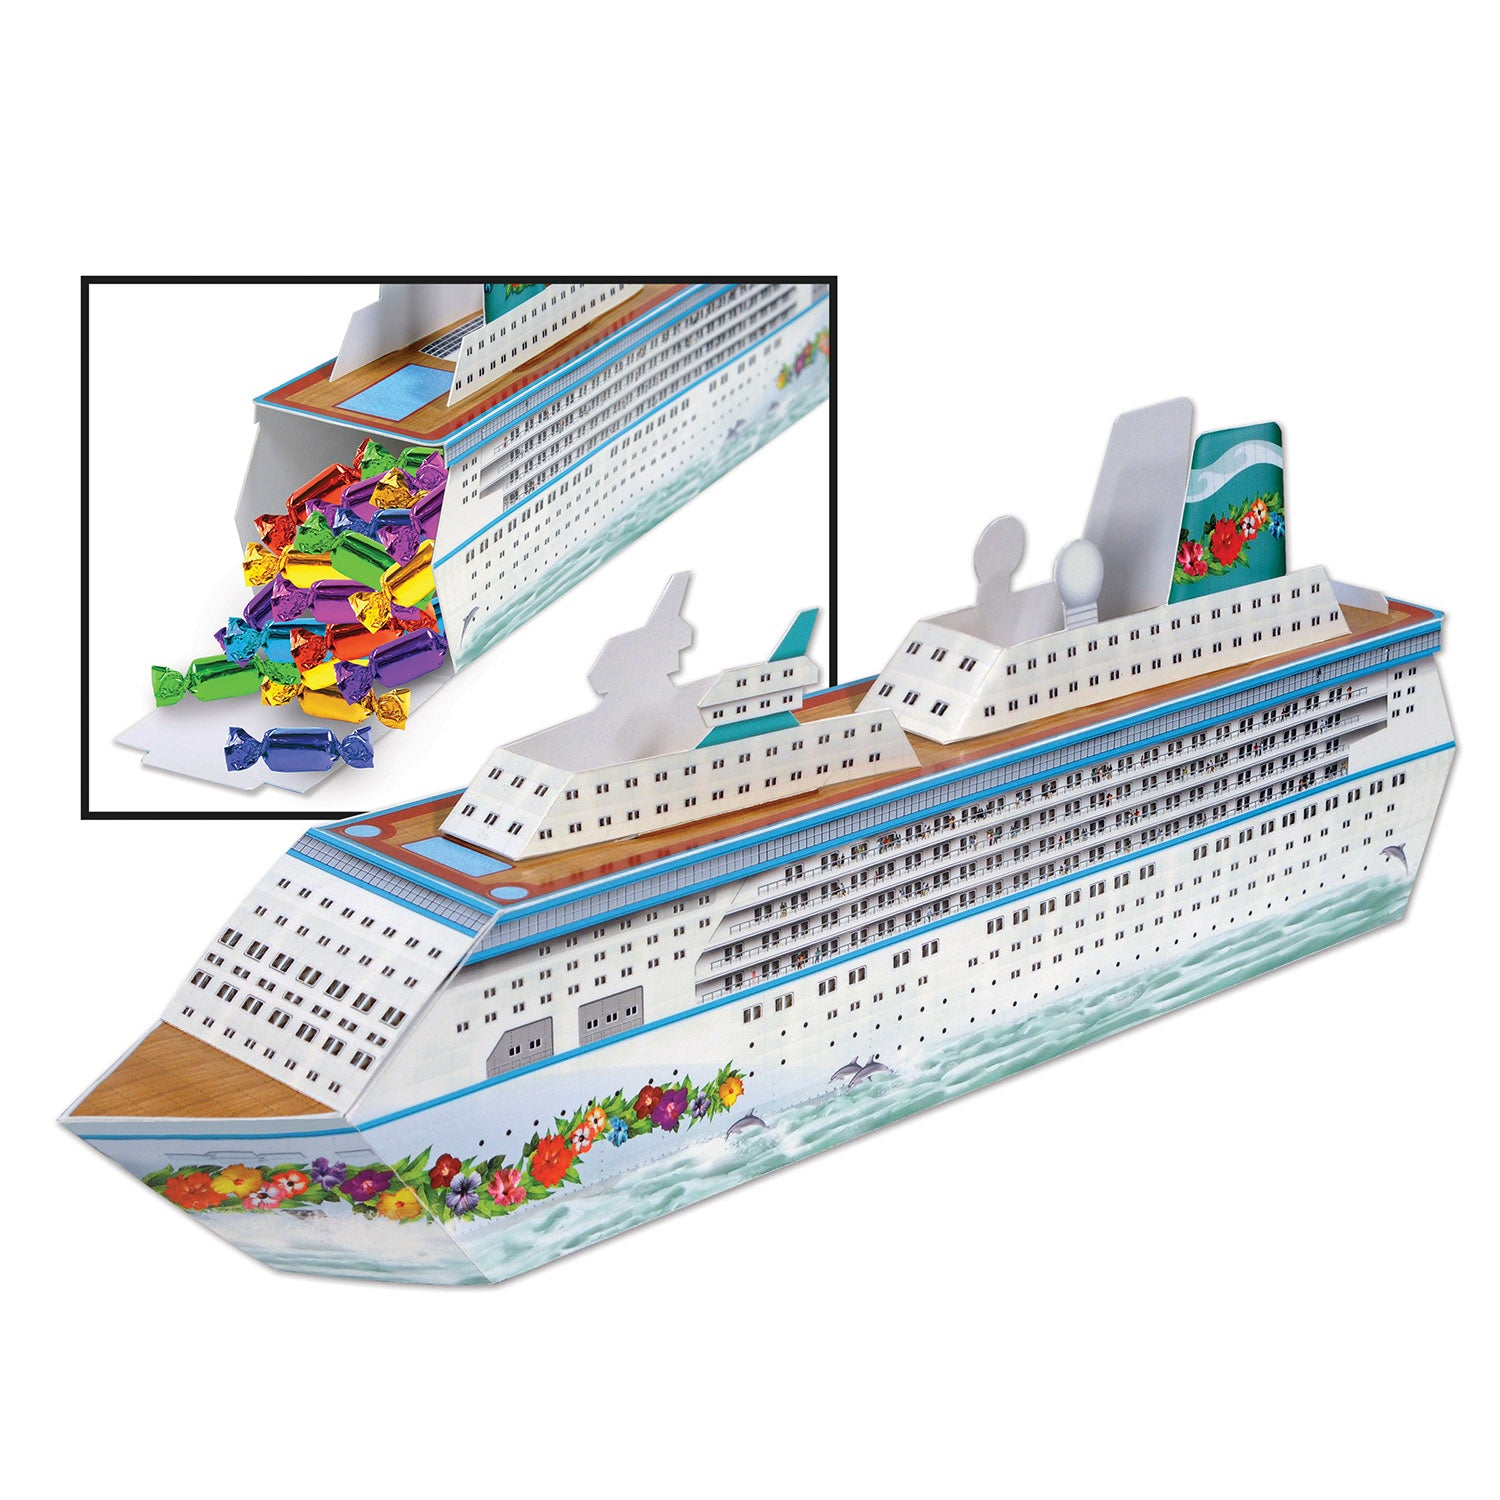 3-D Cruise Ship Centerpiece by Beistle - Nautical Theme Decorations